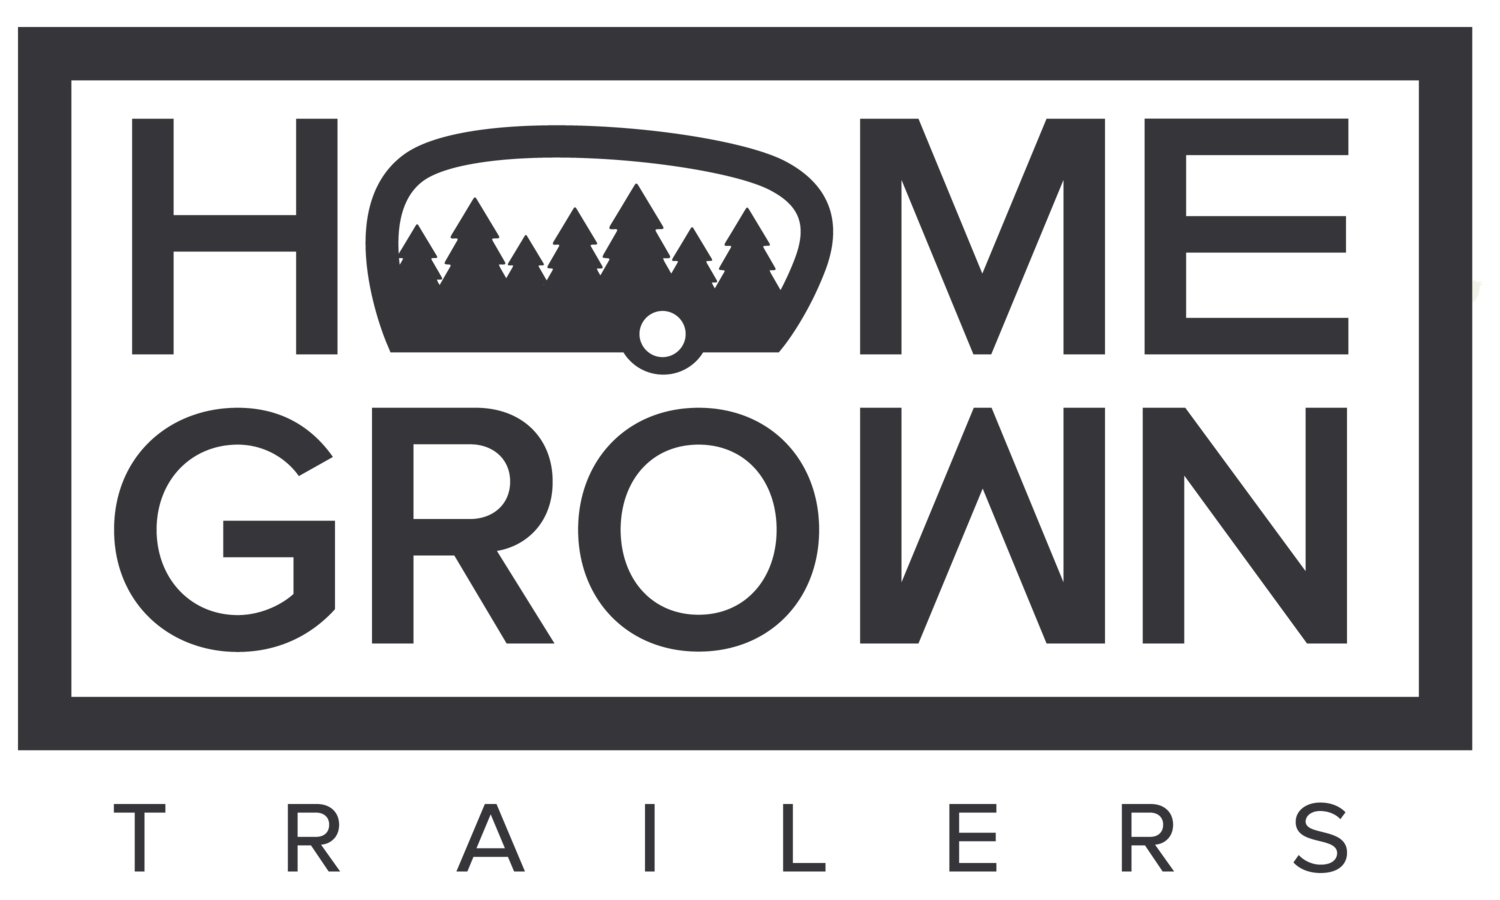 HOMEGROWN TRAILERS